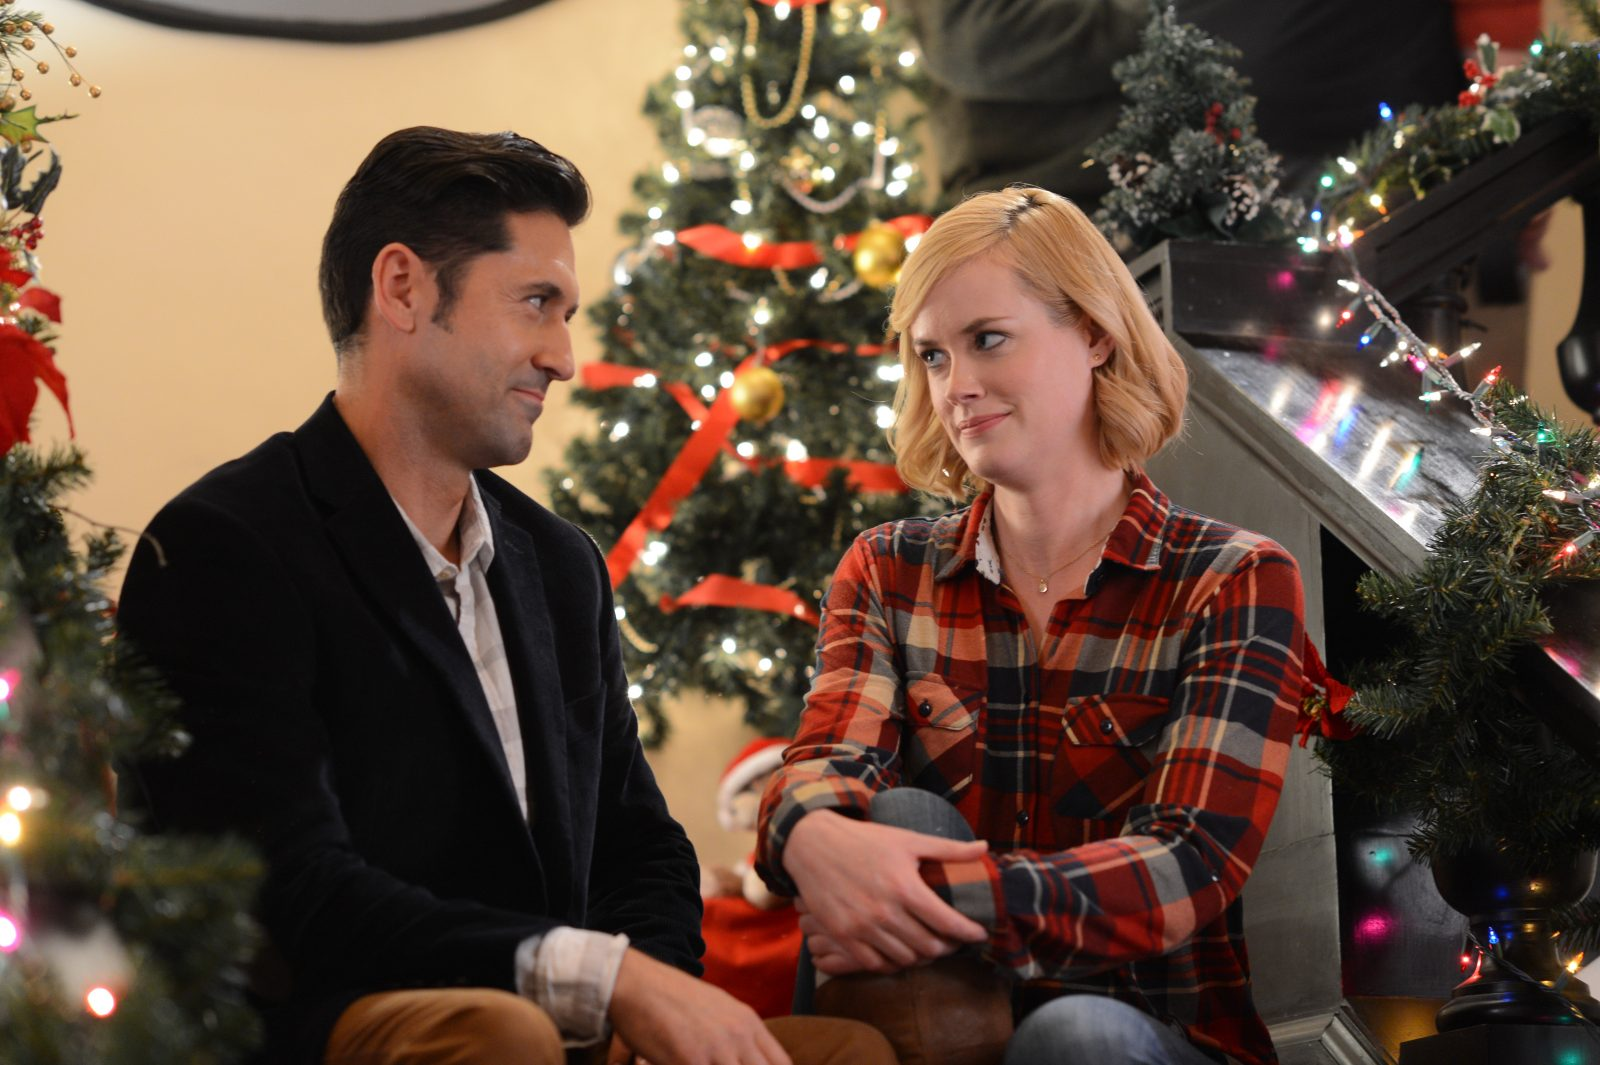 David O'Donnell and Abigail Hawk star in 'A Christmas in Vermont,' which was made in the Buffalo area.